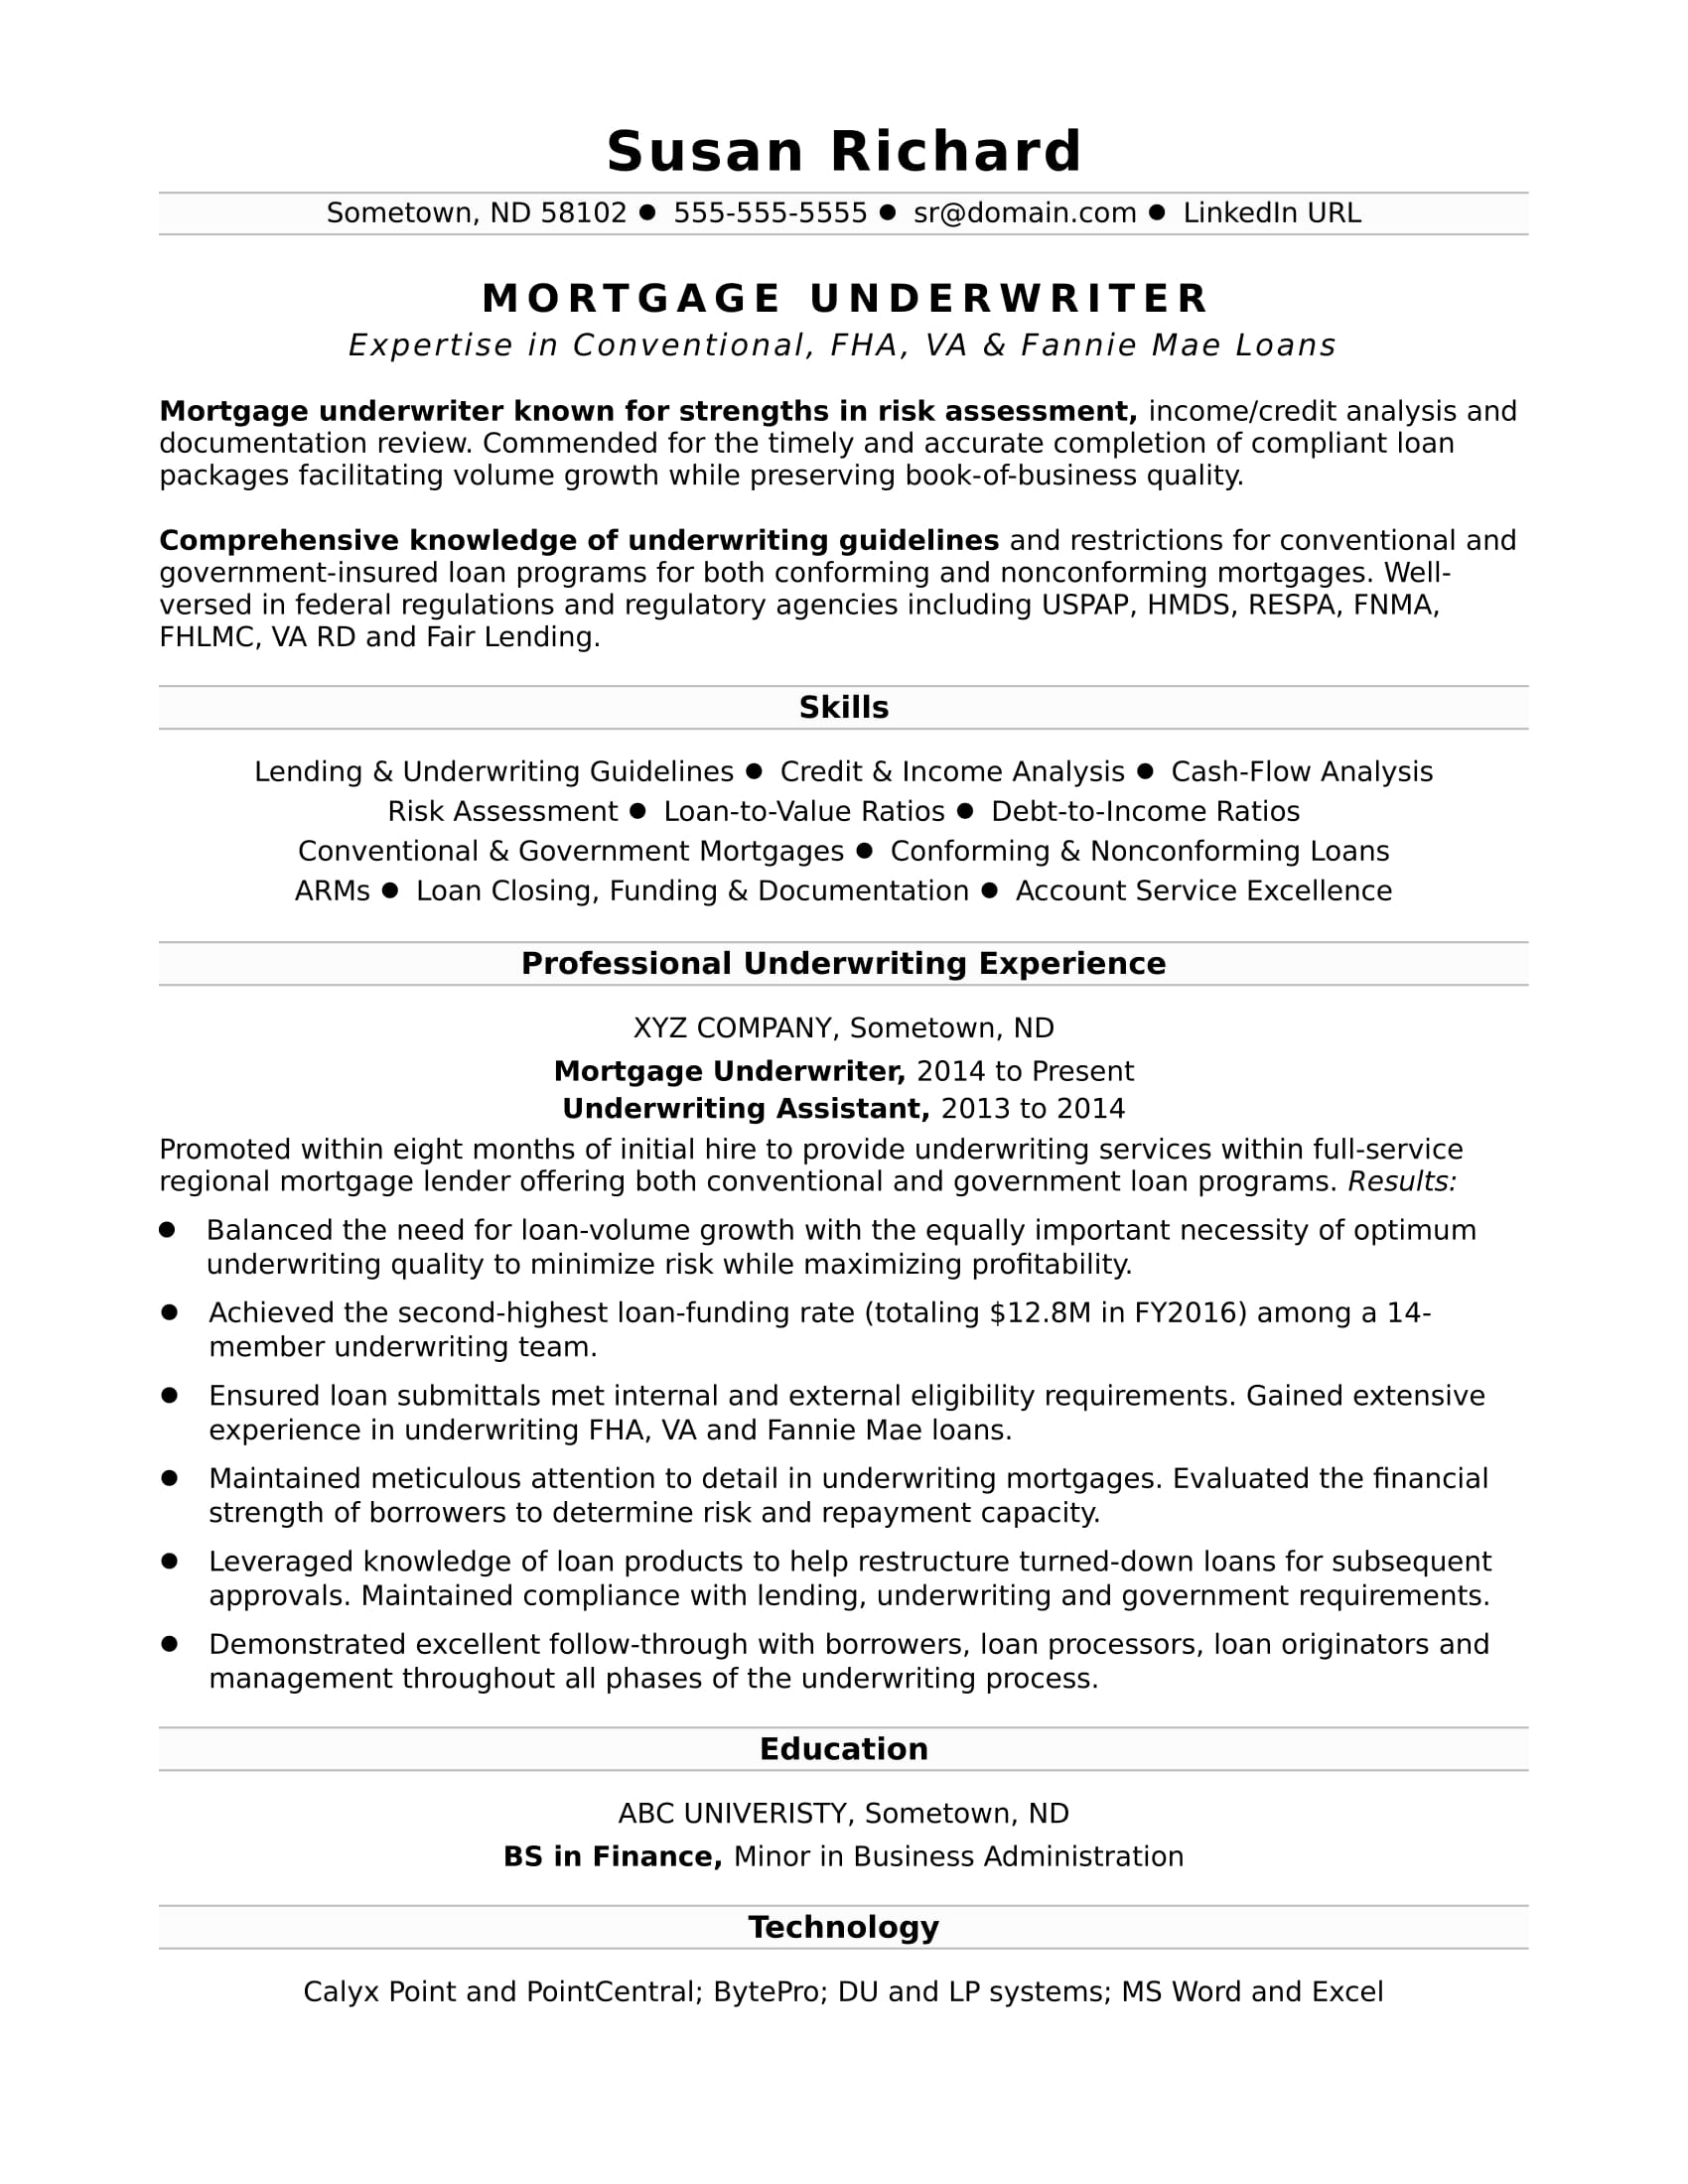 sample resume for a mortgage underwriter - Comprehensive Resume Template